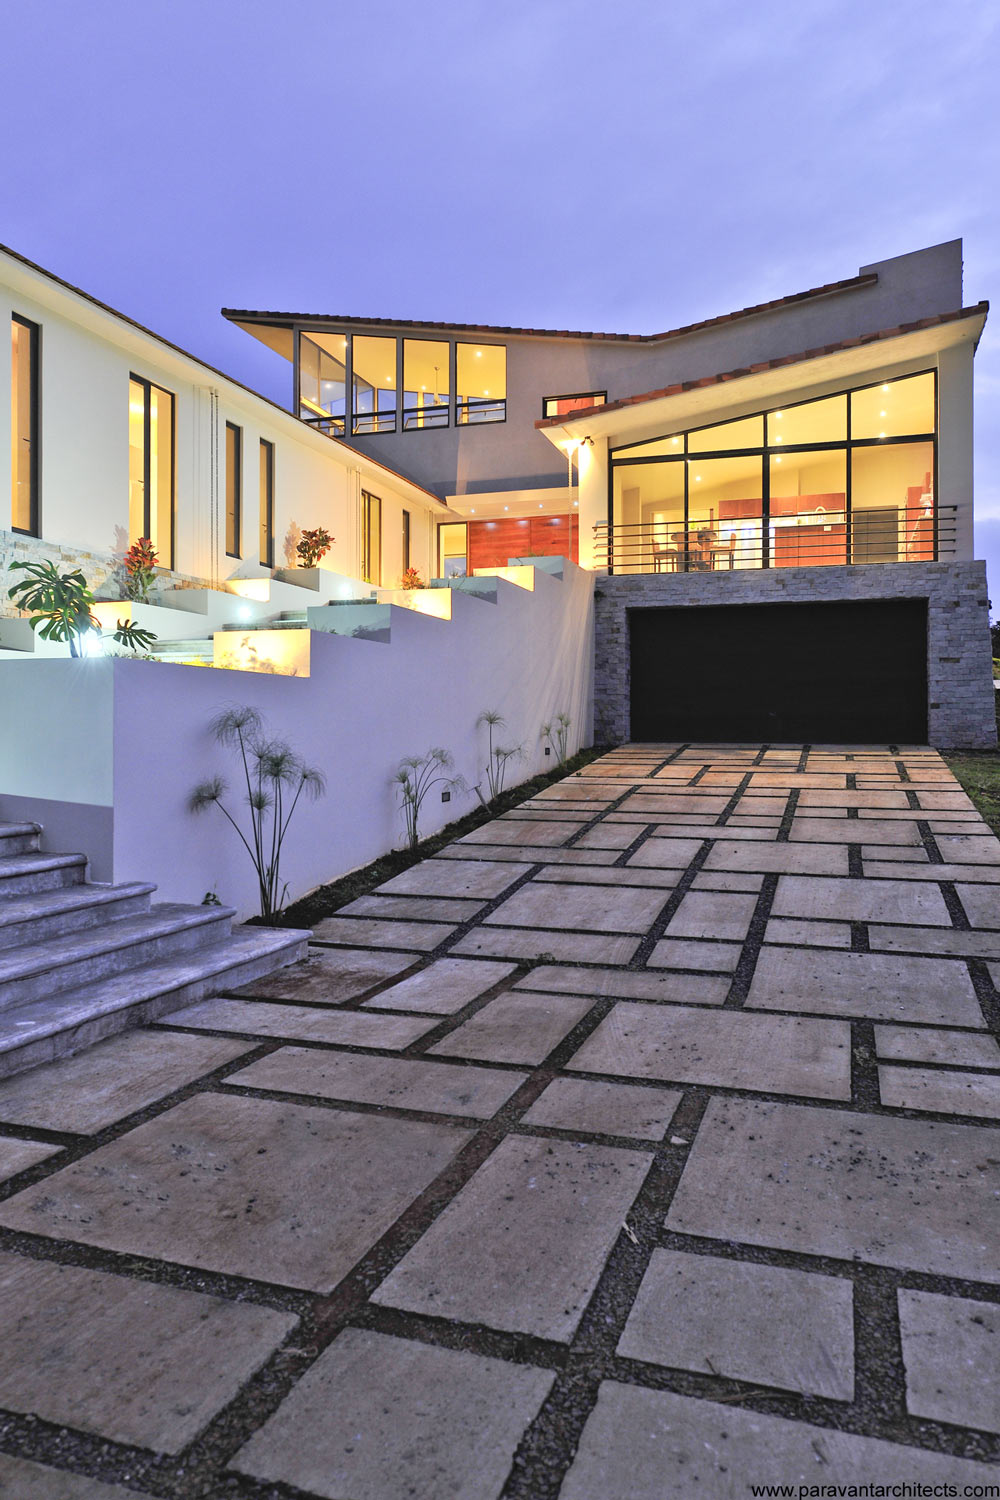 Driveway, Garage, Entrance, Areopagus Residence in Atenas, Costa Rica by Paravant Architects